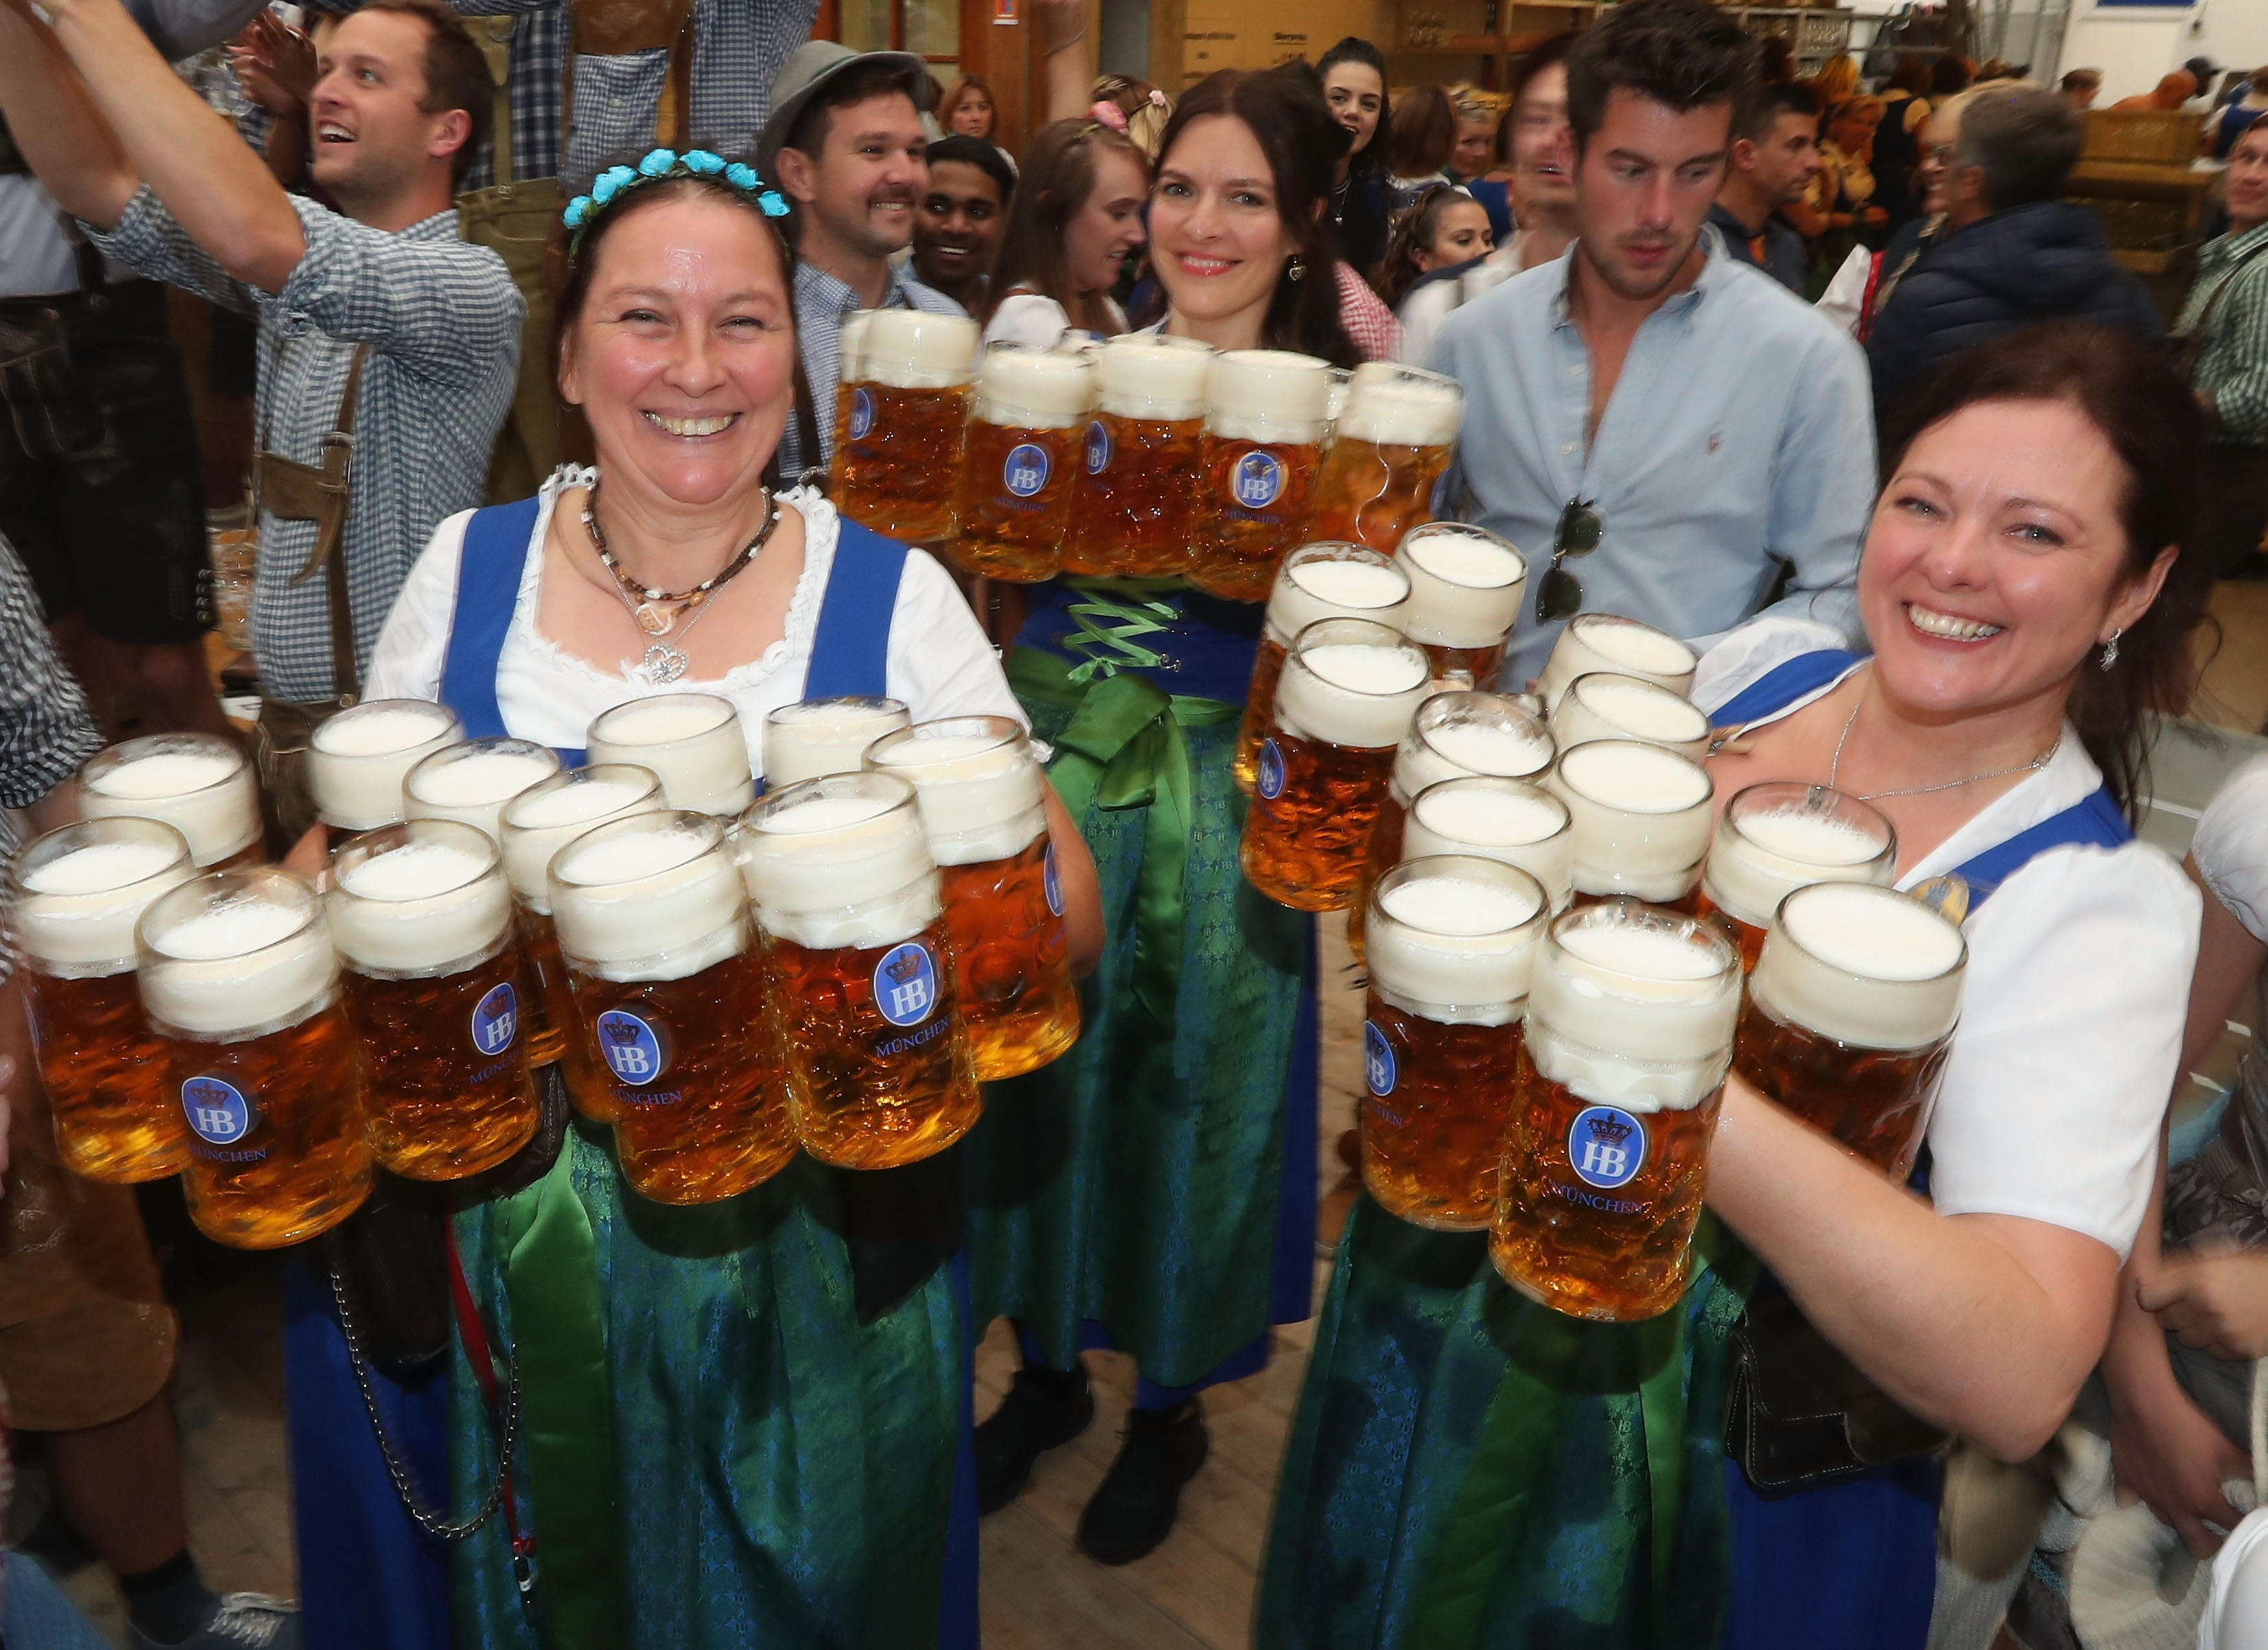 Suds shortage? Warming climate threatens world's beer supply